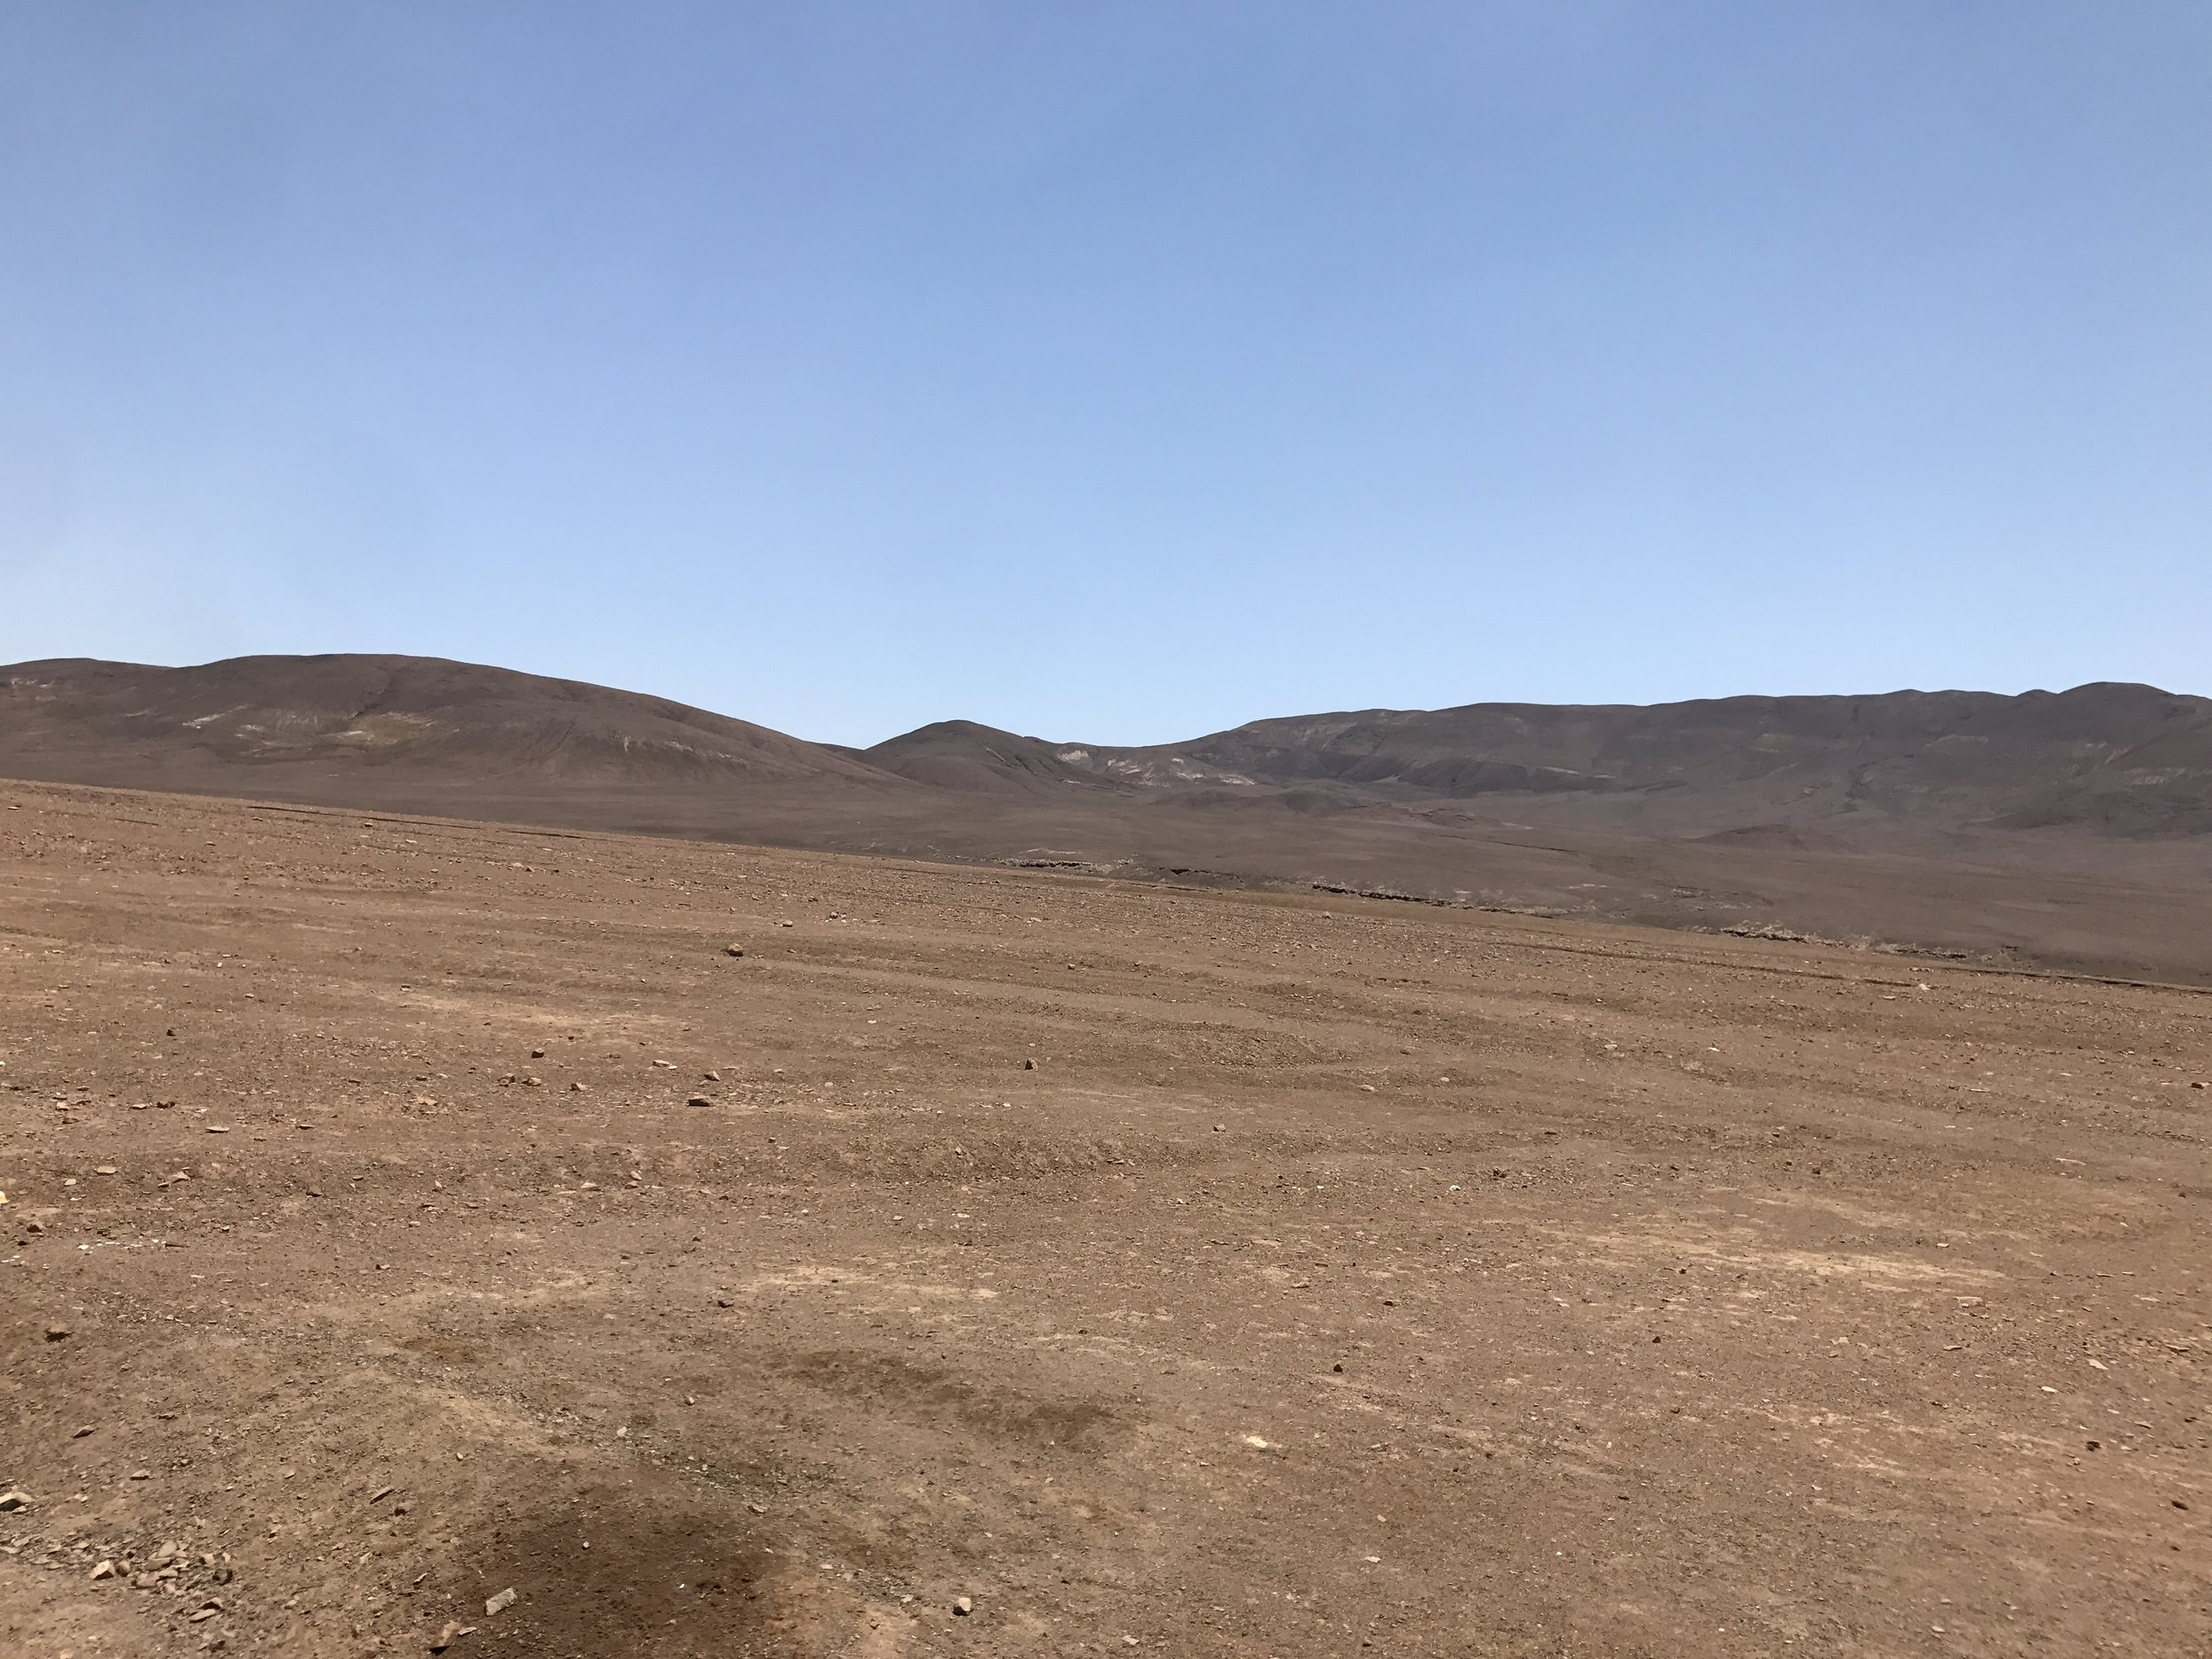 Parts of the Atacama desert look like the surface of Mars.